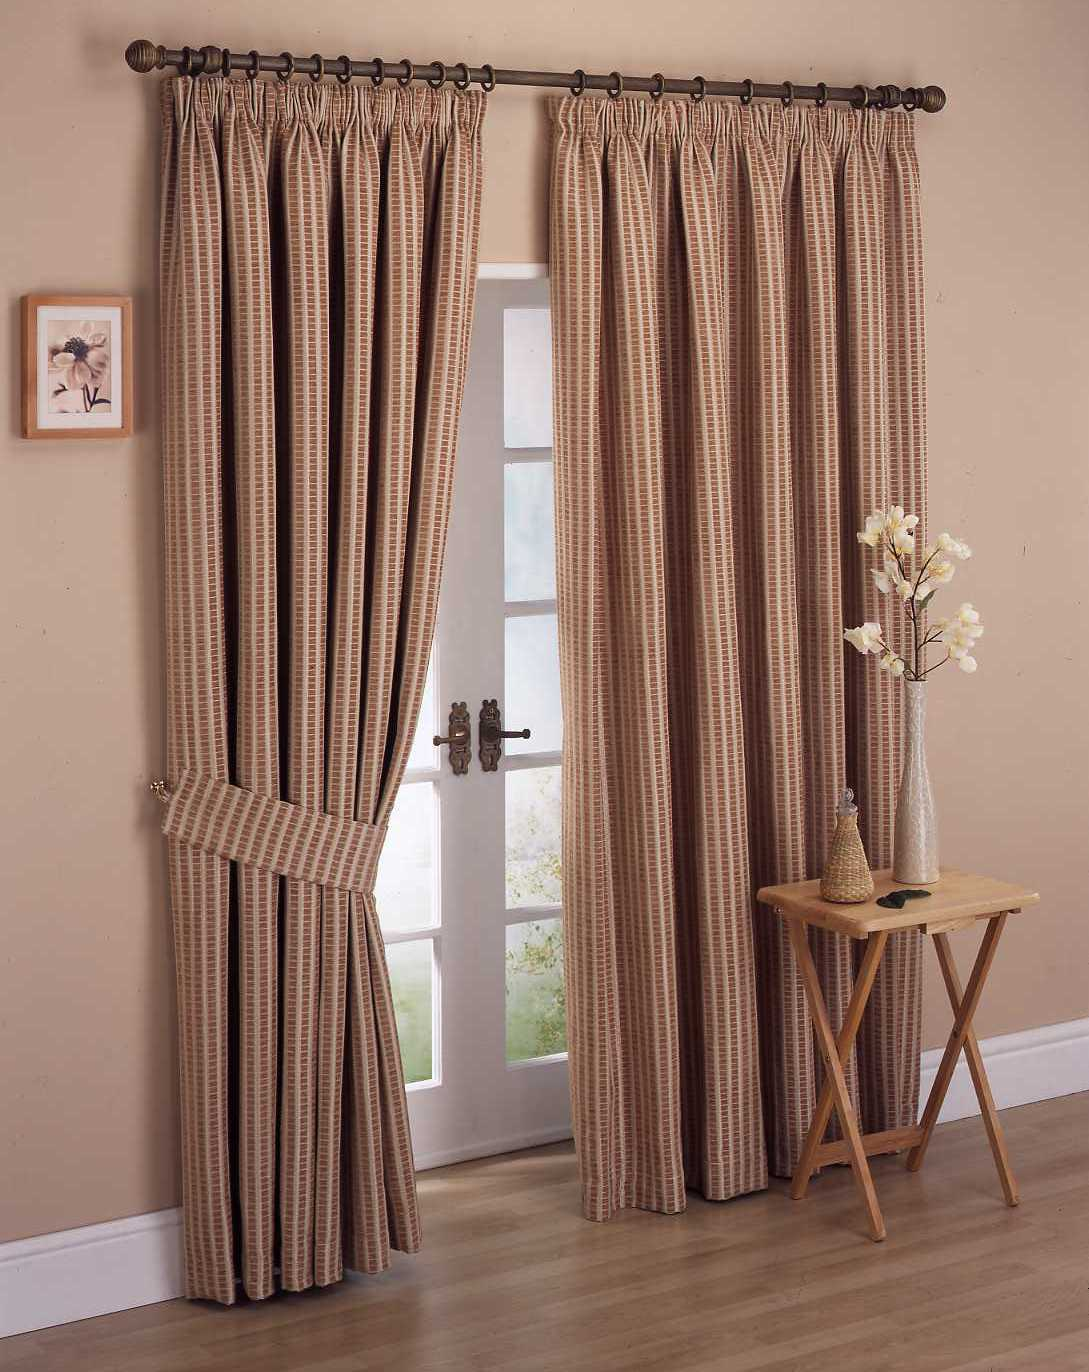 Curtain Designs Ideas: Top Catalog Of Classic Curtains Designs 2013